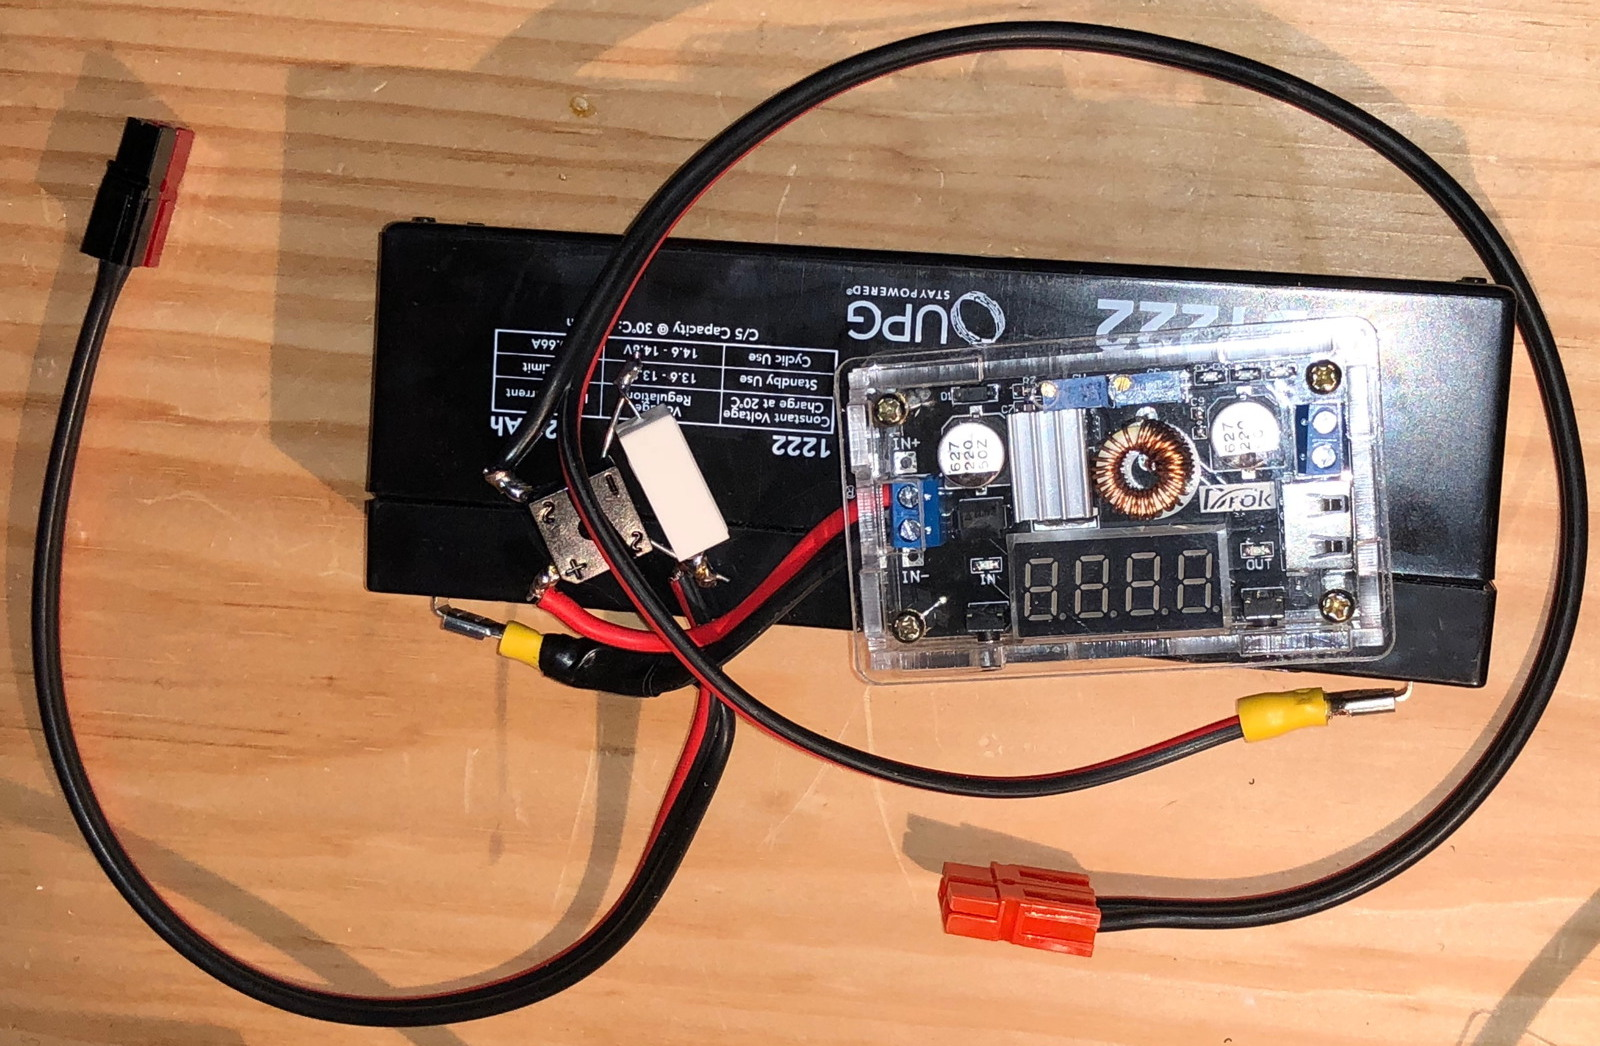 Tarpn Robust Power For Raspberry Pi Is Unplugged From Before Connecting Anything To The Make Sure You Adjust Output Voltage 52 Or So Plugging In Youll Up System